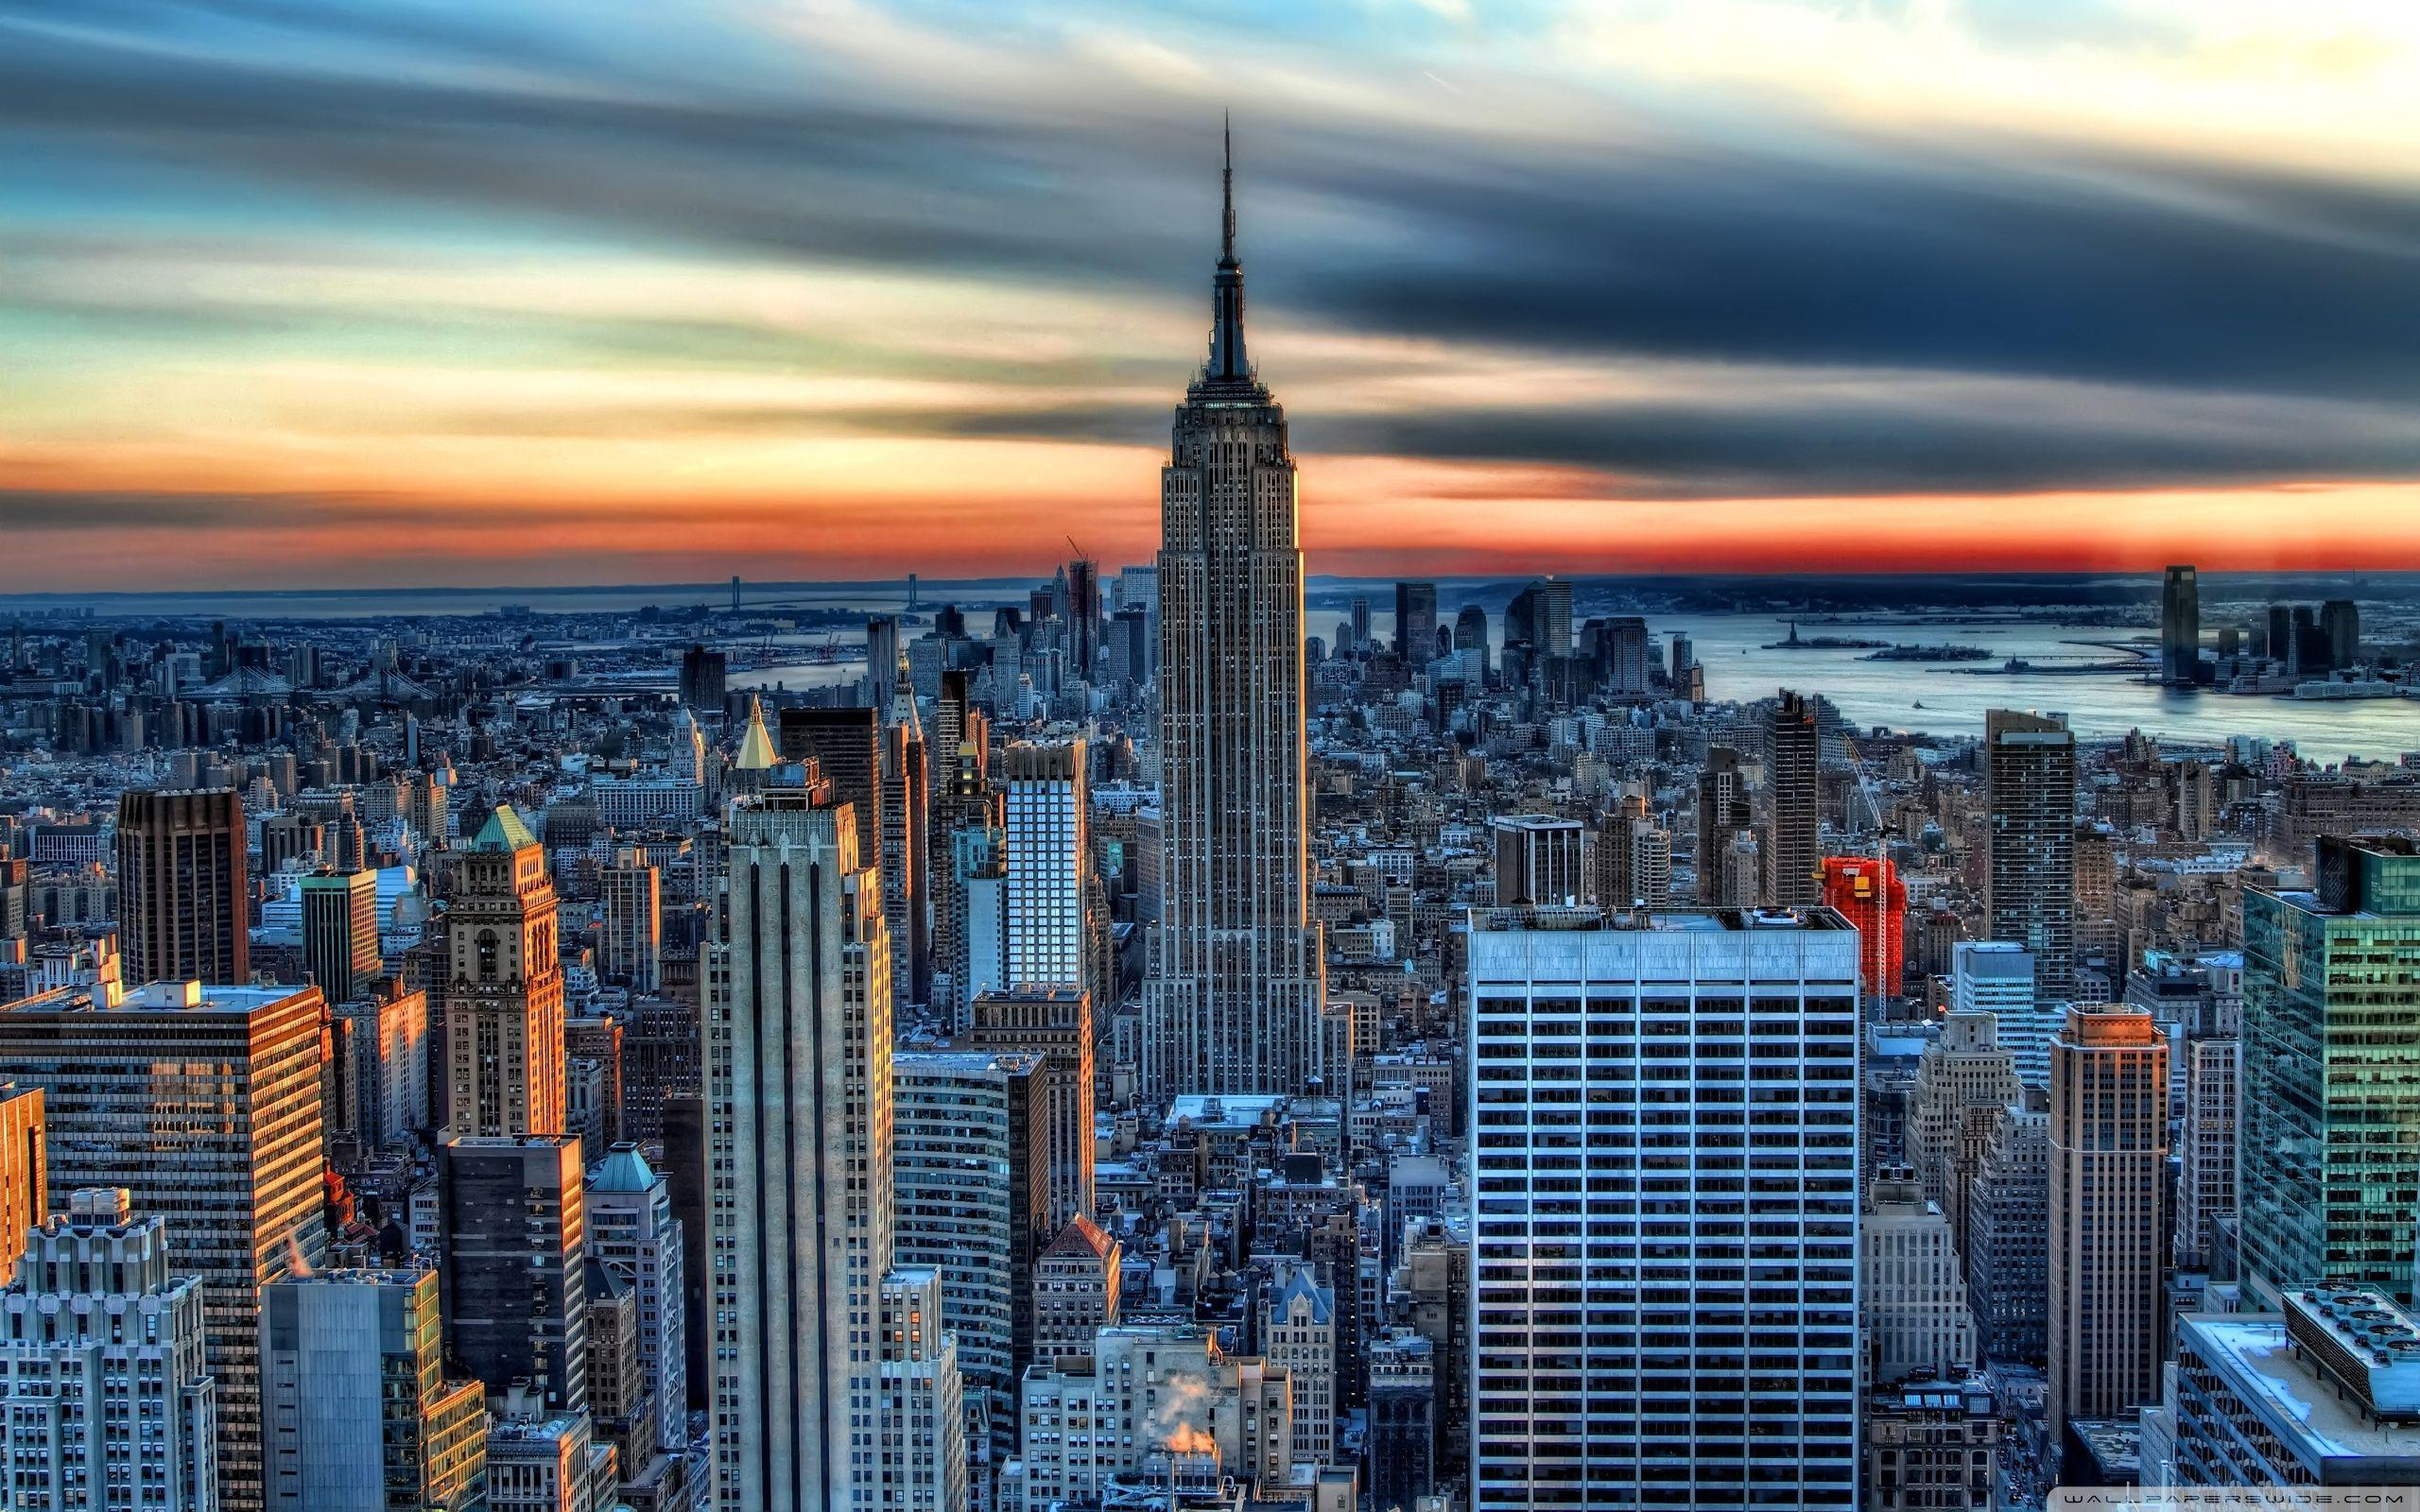 Empire State Building HDR HD desktop wallpapers : High Definition